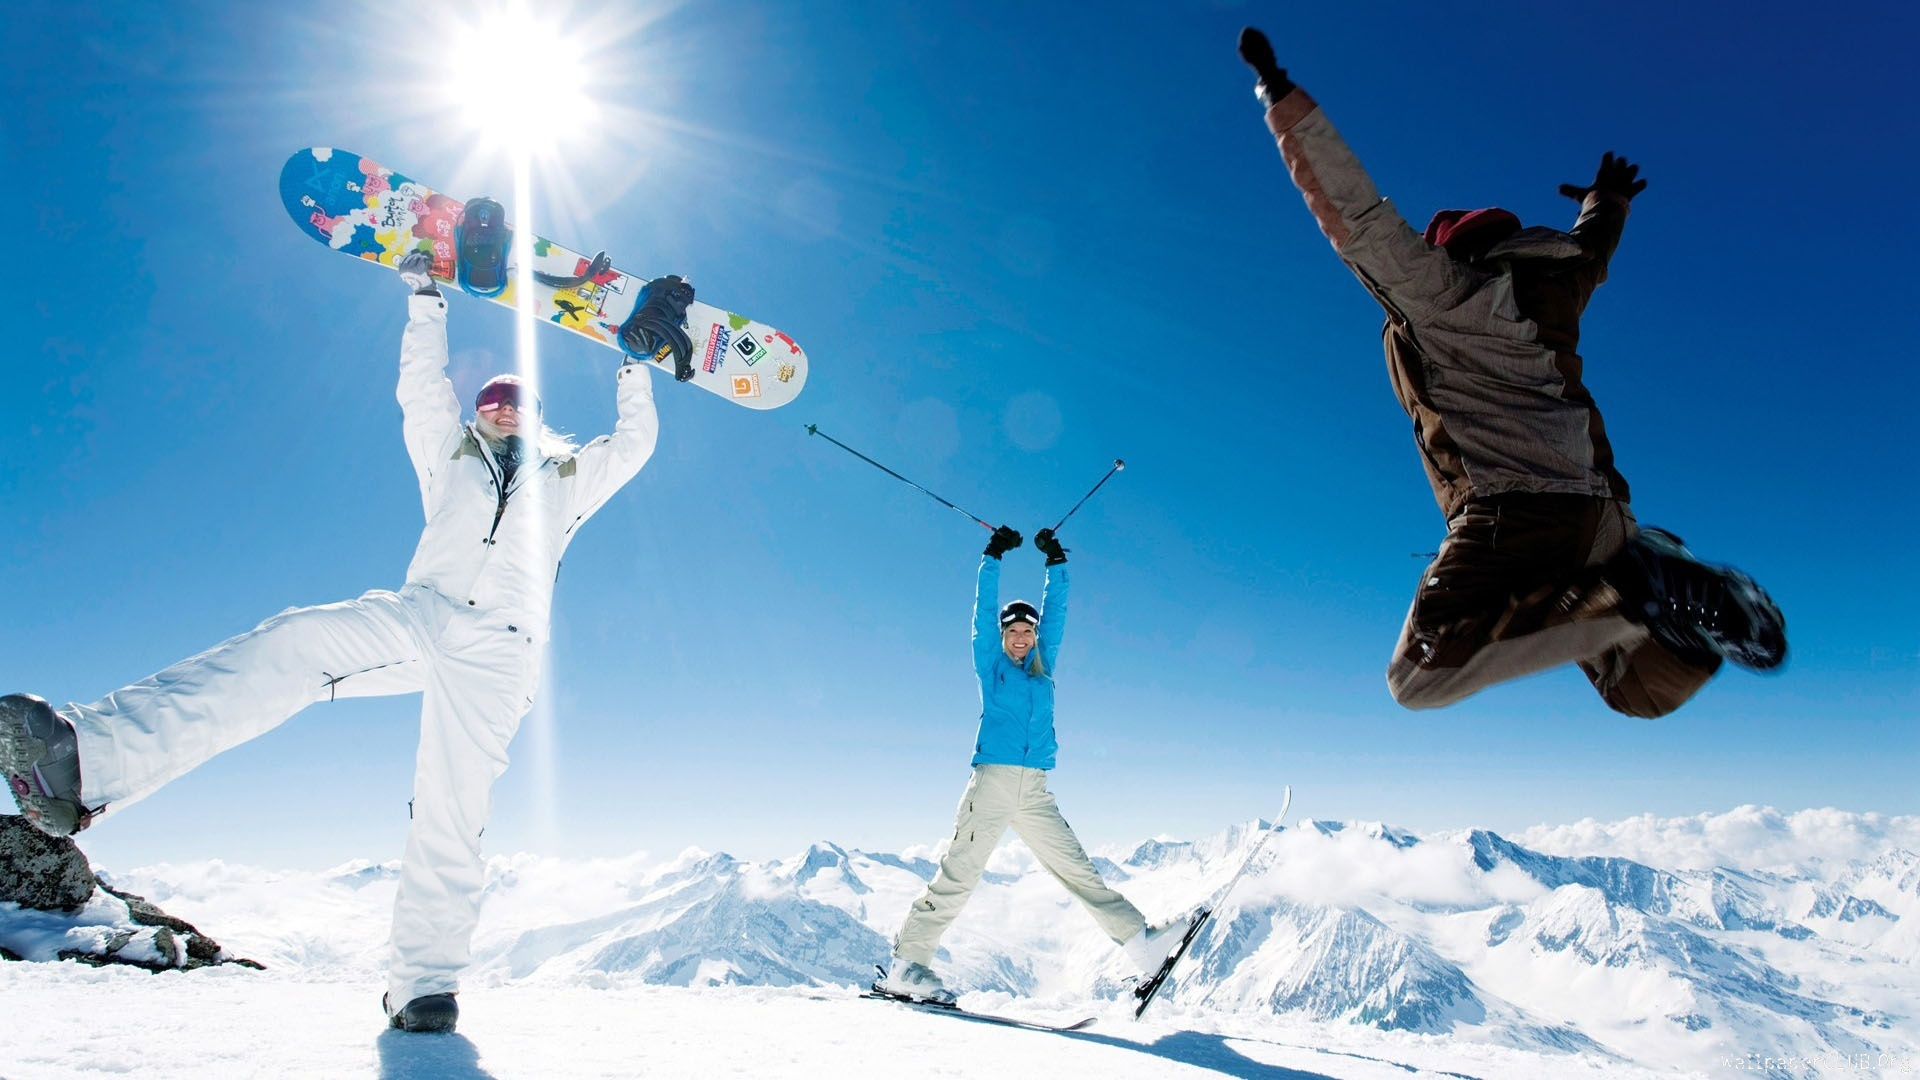 snowboarding-girls